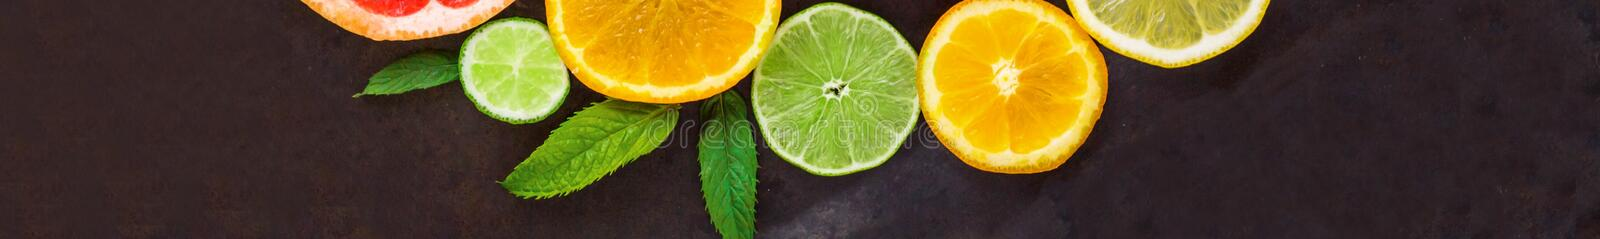 banner of citrus food pattern on white background - assorted citrus fruits with mint leaves on black background stock photo